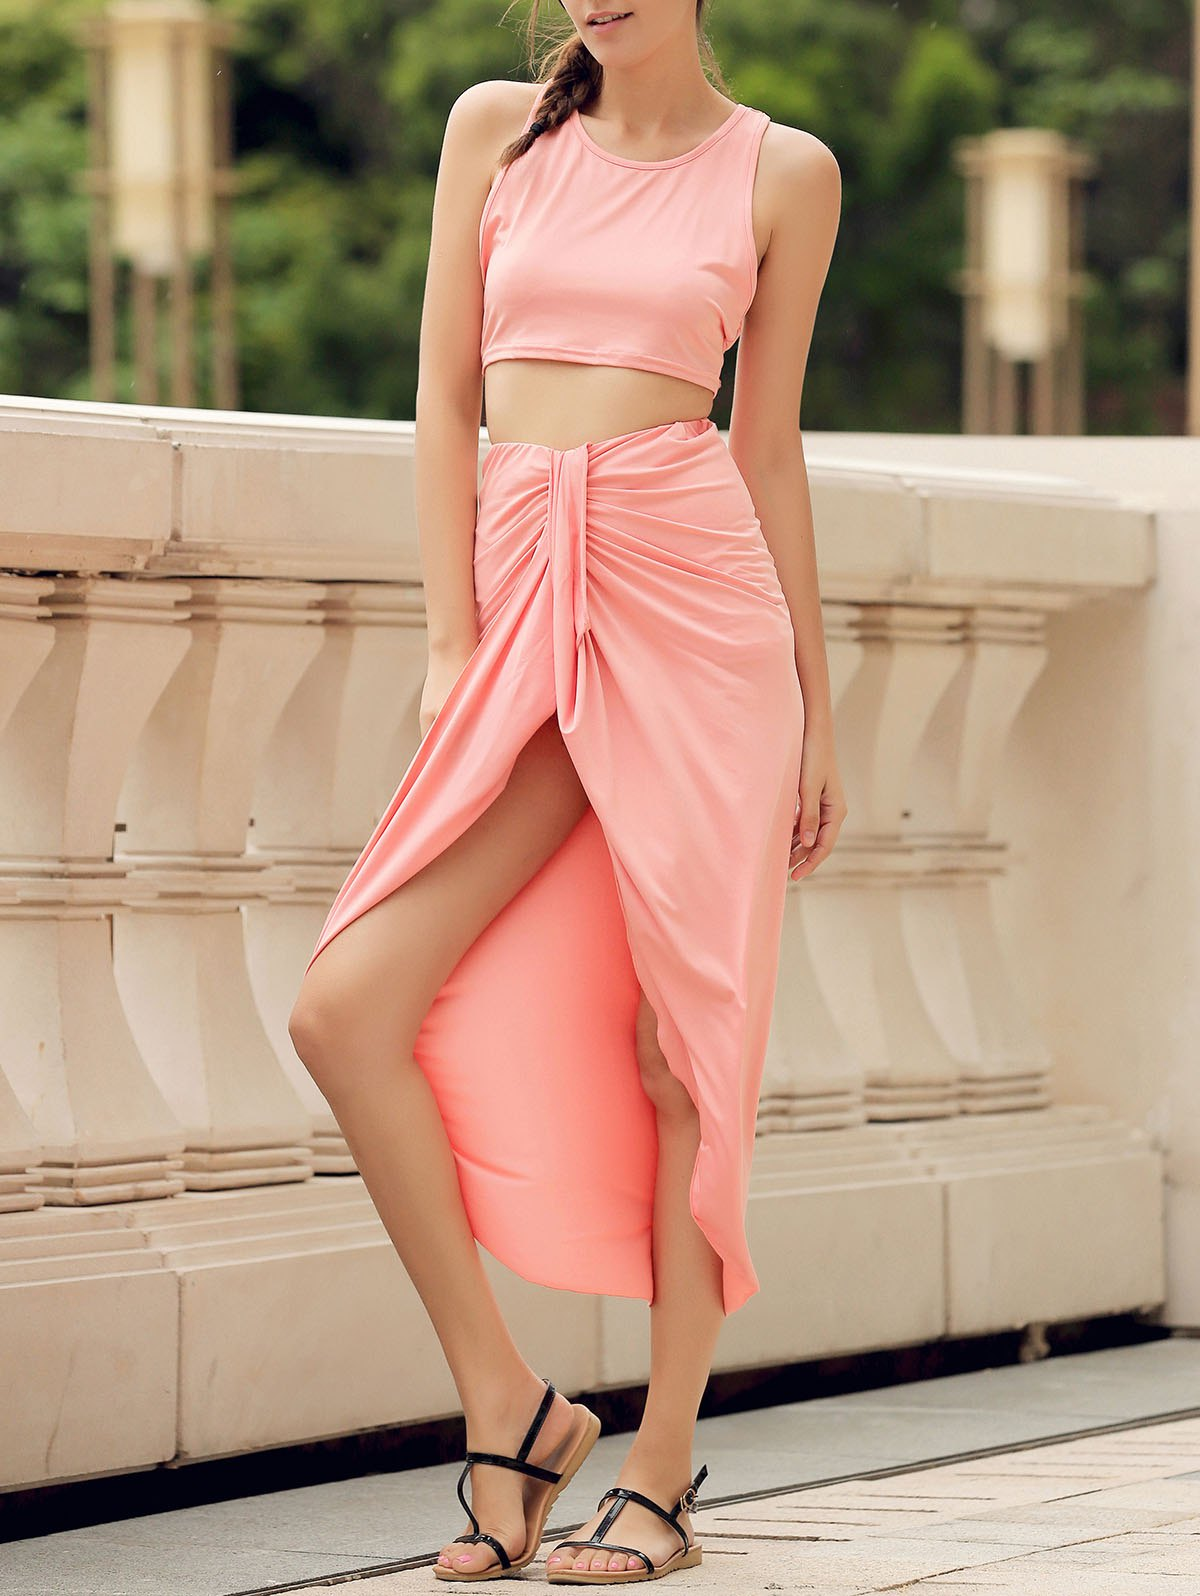 Sexy Candy Color Round Neck Crop Top and Irregular Skirt Two-Piece Set For Women соковыжималки электрические vitek соковыжималка электрическая vitek vt 3651 gy